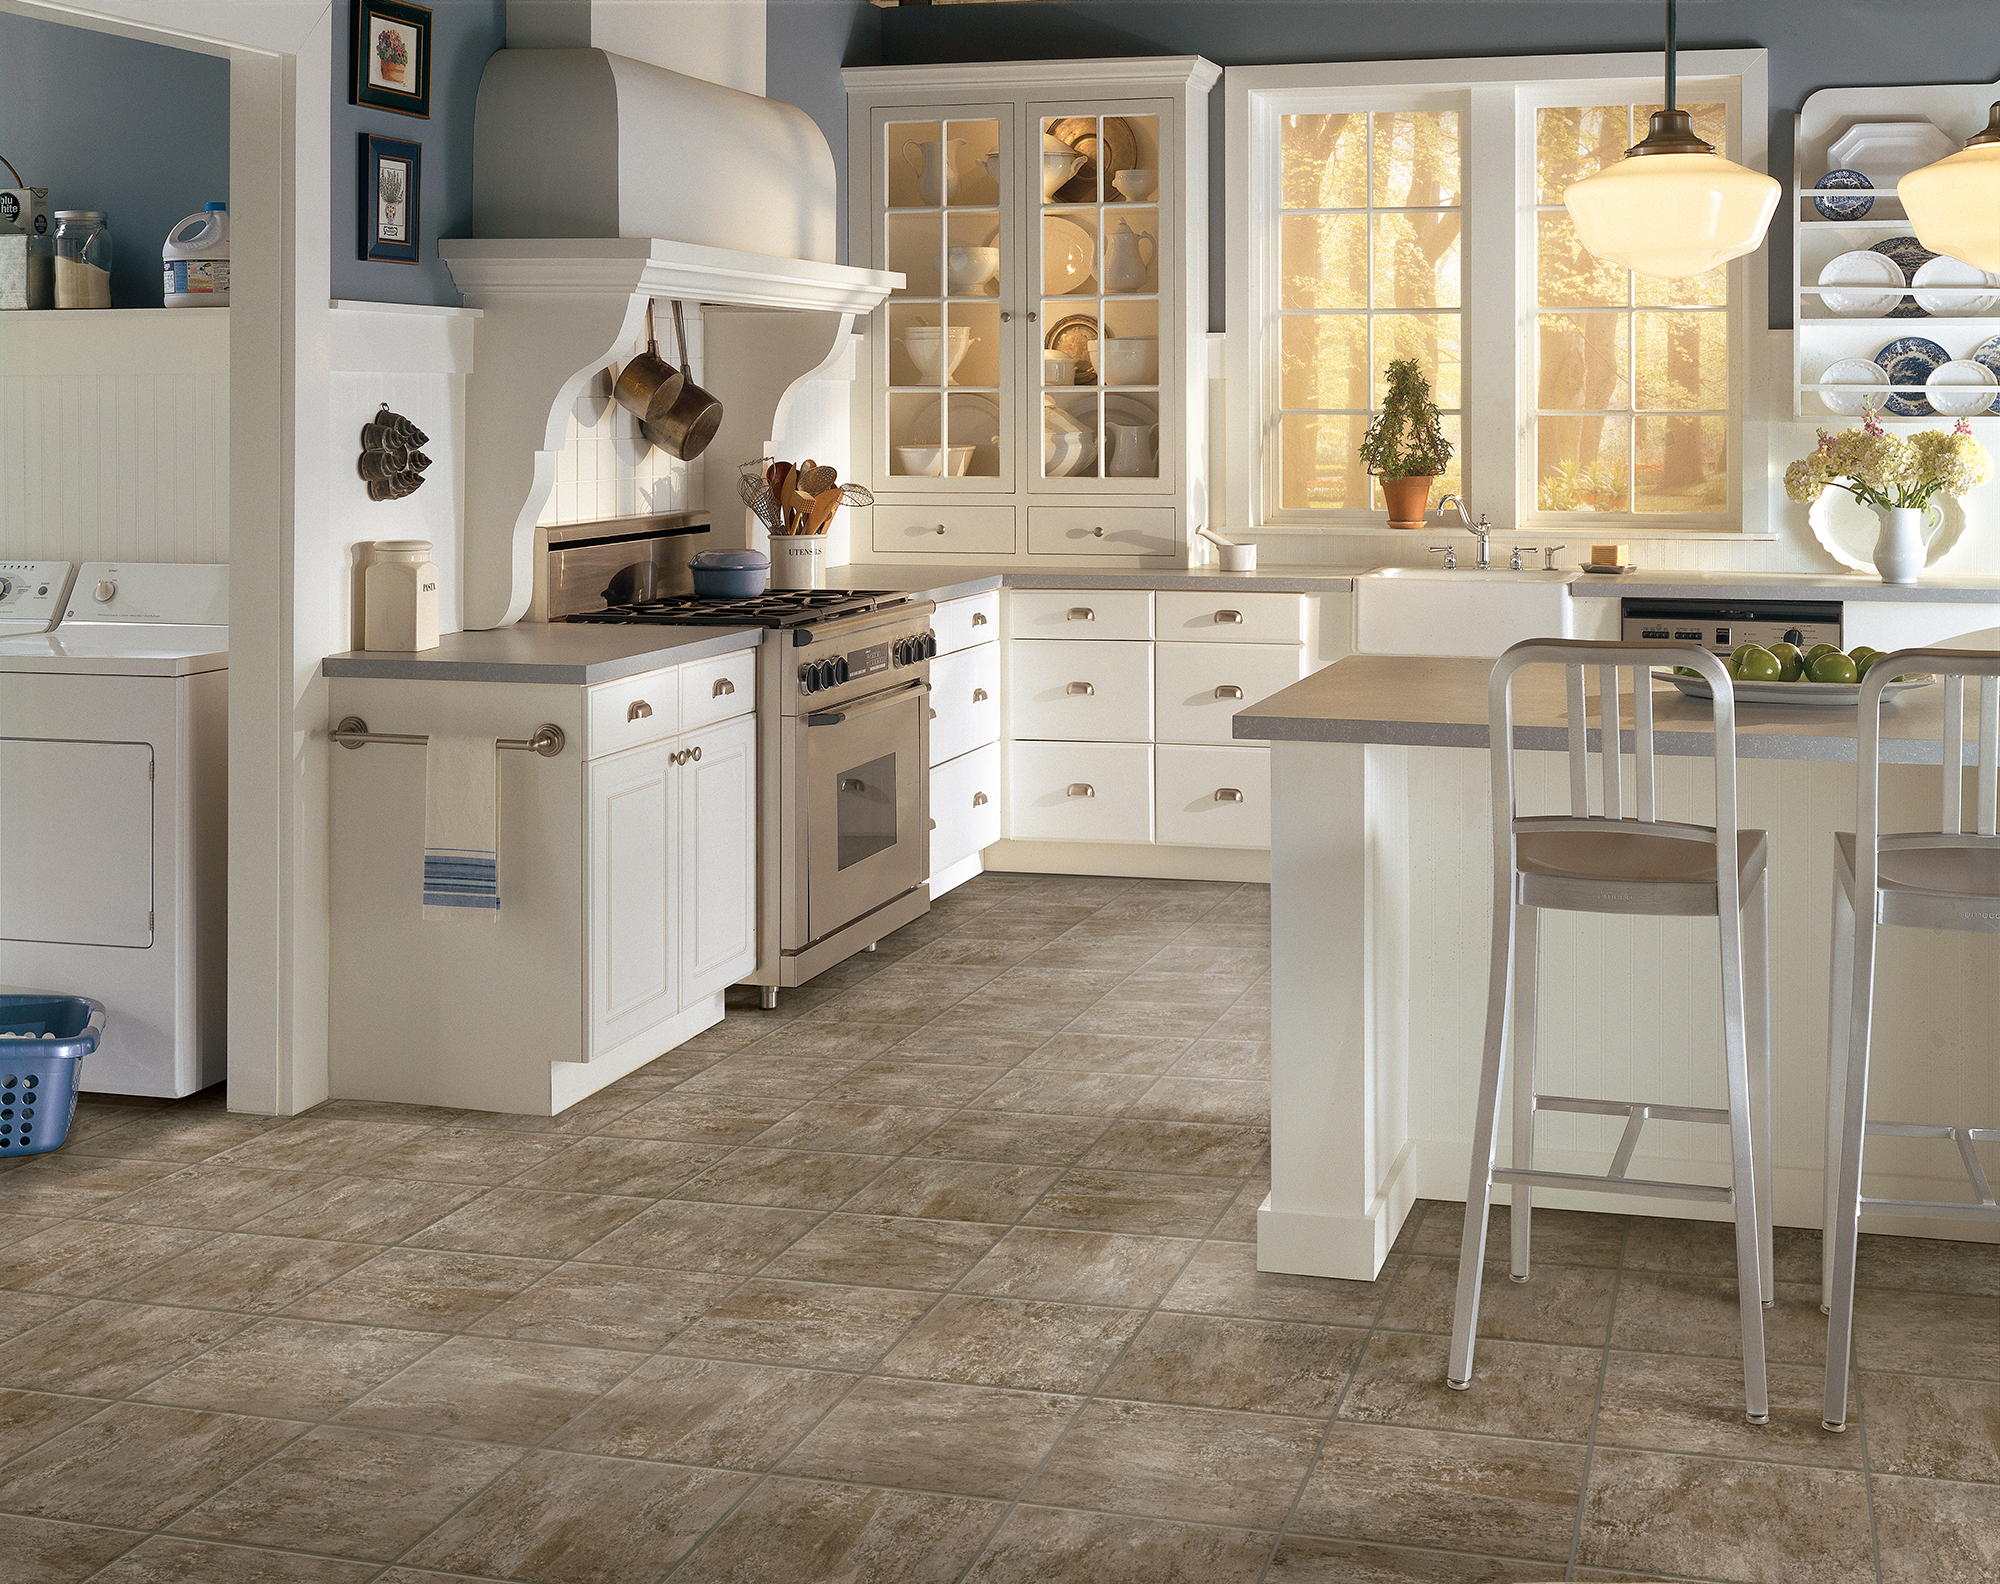 Flooring For Kitchens And Bathrooms 5 Flooring Options For Kitchens And Bathrooms Empire Today Blog